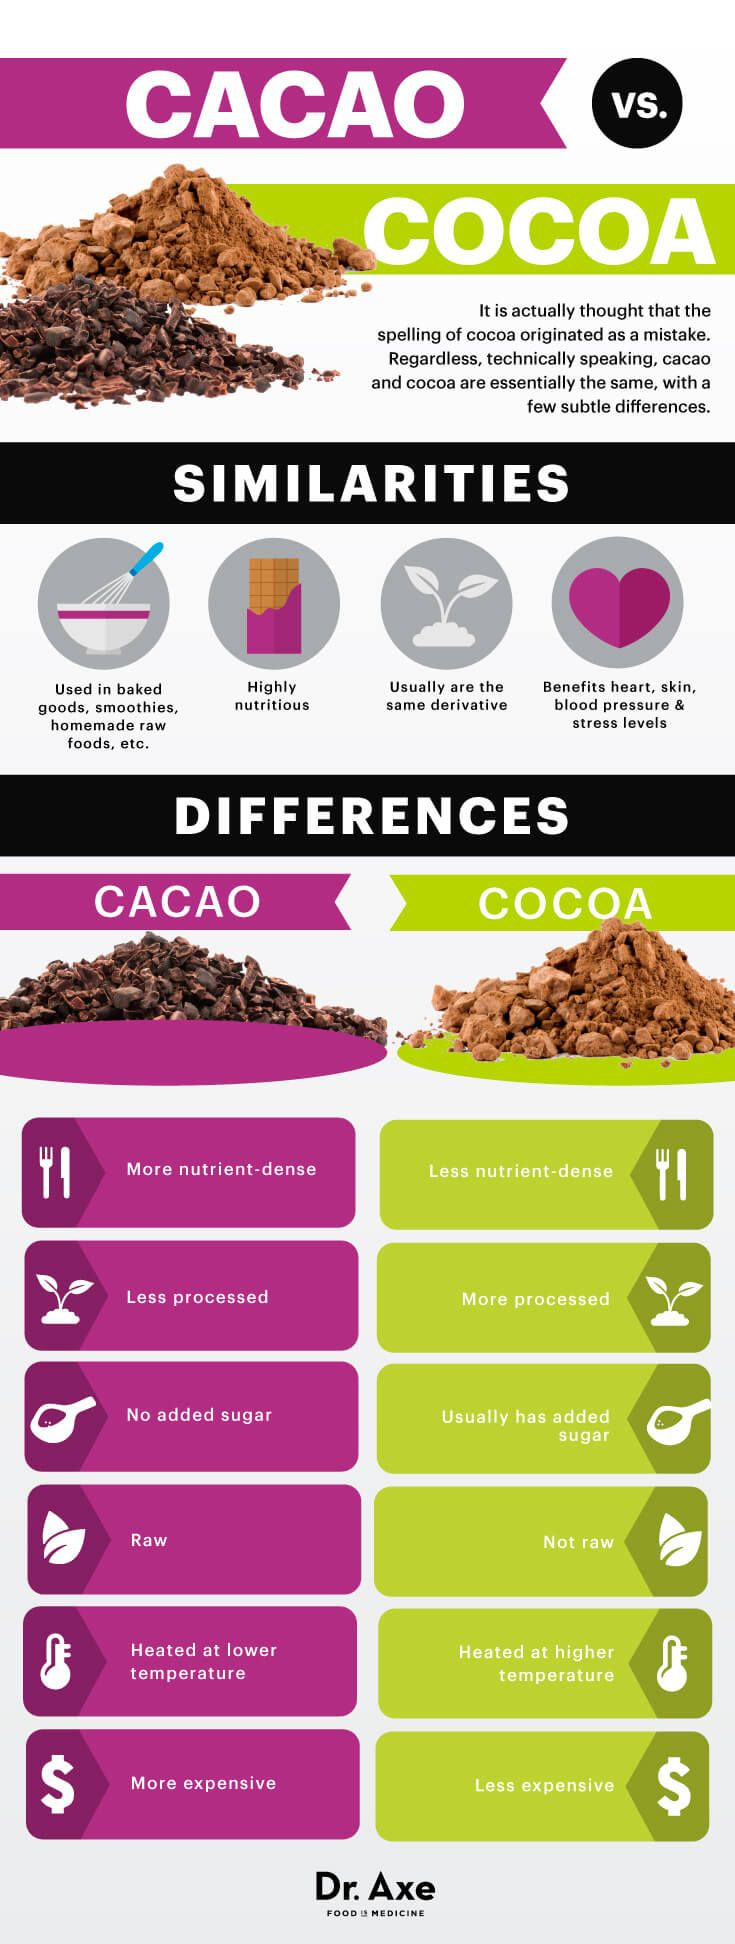 Red Investiga Innova Cacao Chocolate = Research Innova Cocoa Chocolate Network: CACAO vs. COCOA